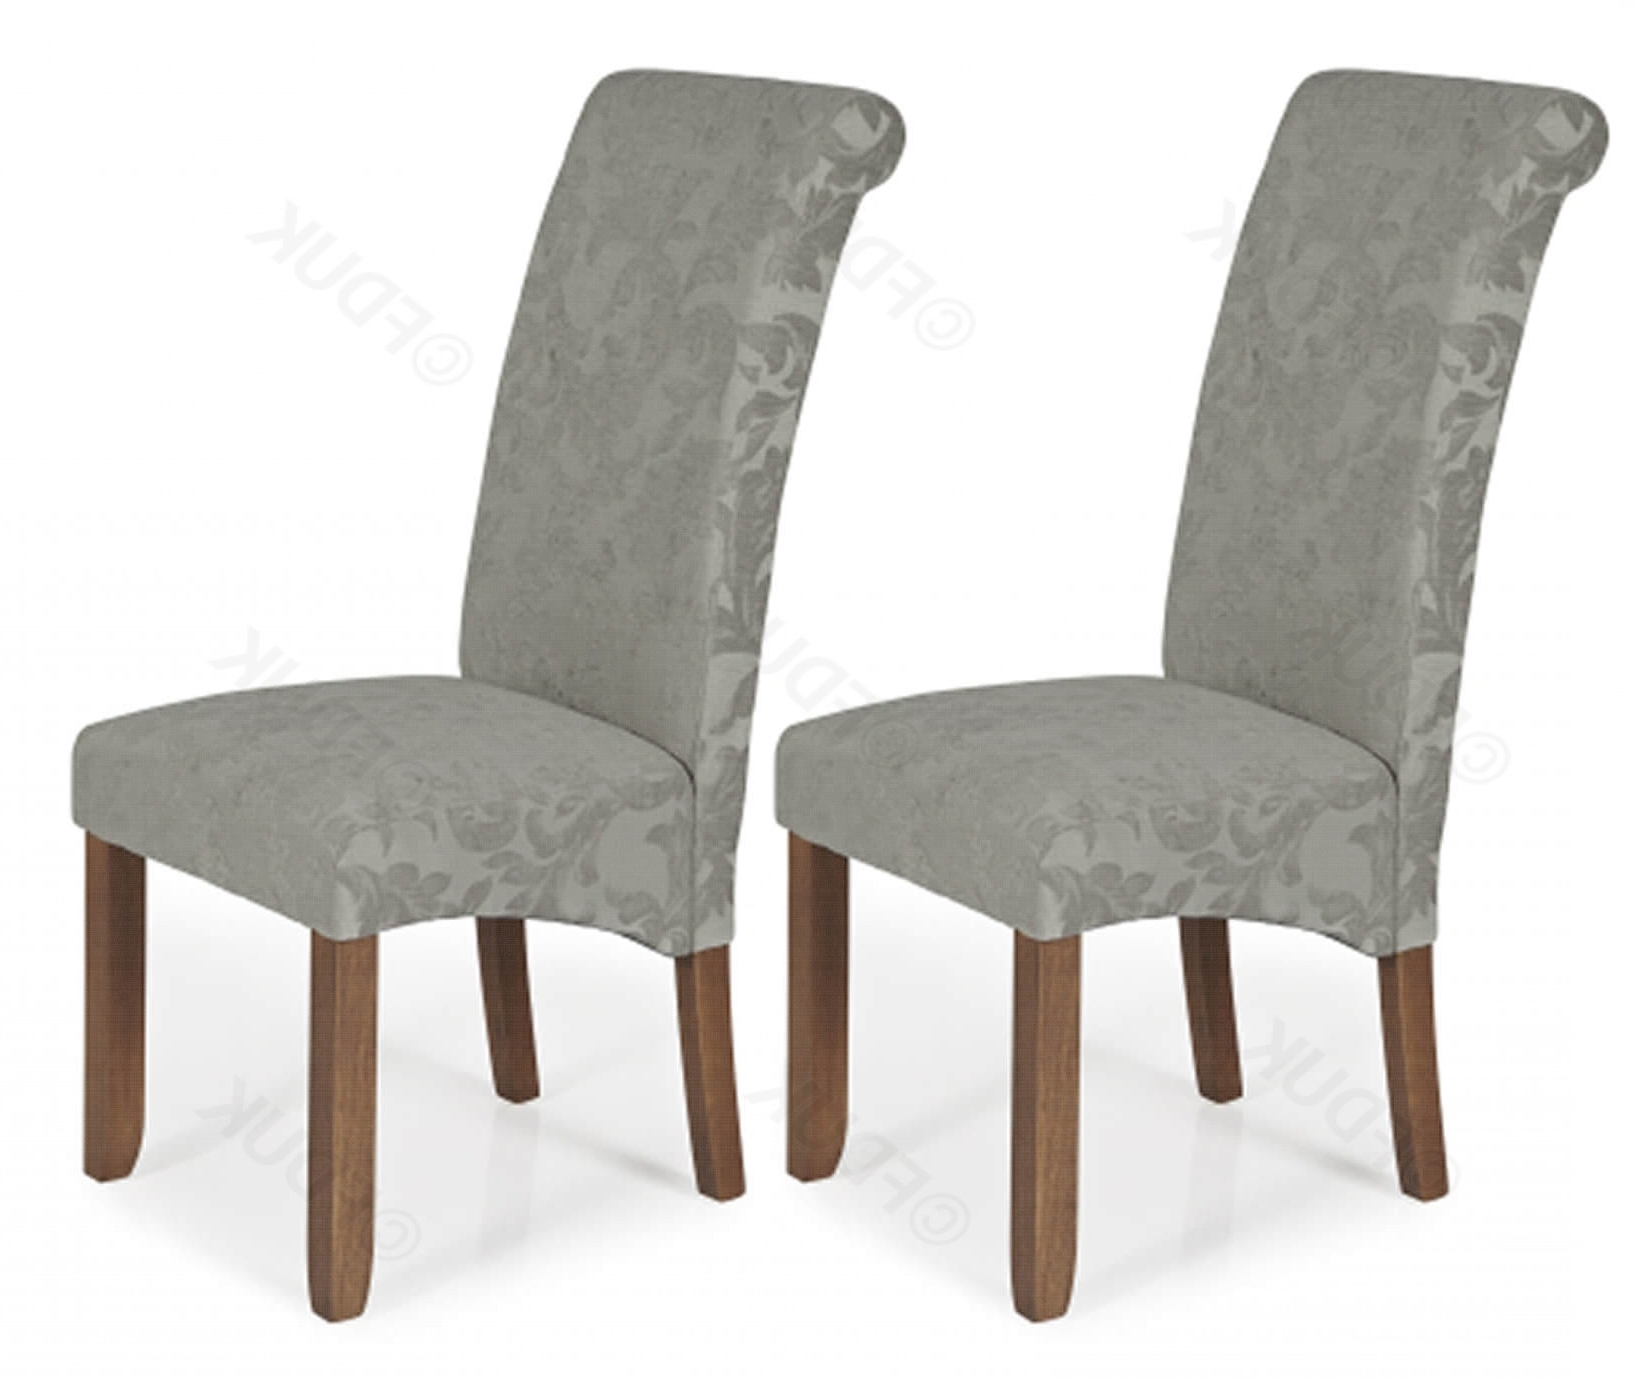 Current Serene Furnishings Kingston Silver Floral Chairs With Walnut Legs Fduk Best  Price Guarantee We Will Beat Our Competitors Price! Give Our Sales Team A Within Fabric Dining Chairs (Gallery 11 of 25)